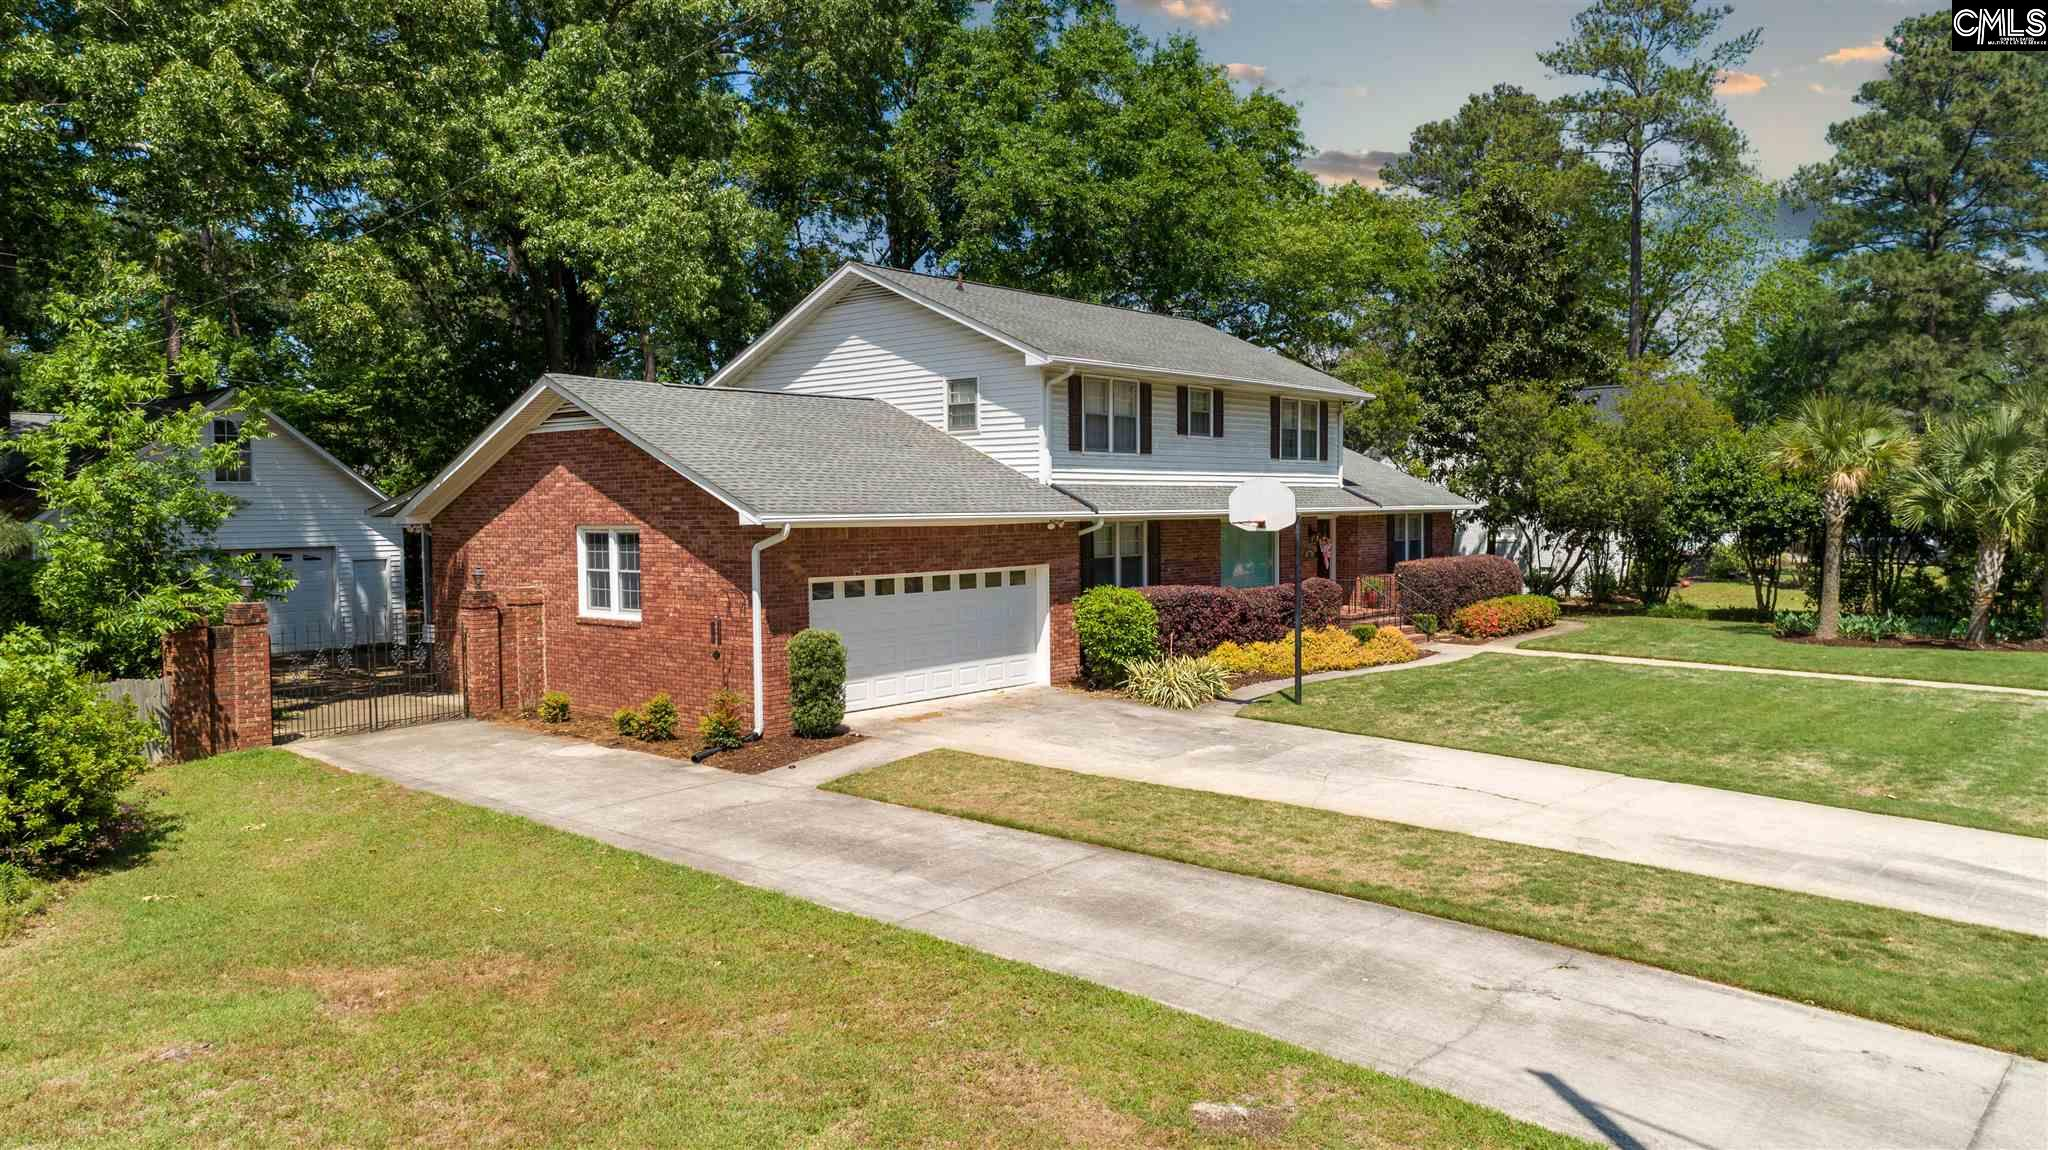 321 Crown Point Columbia, SC 29209